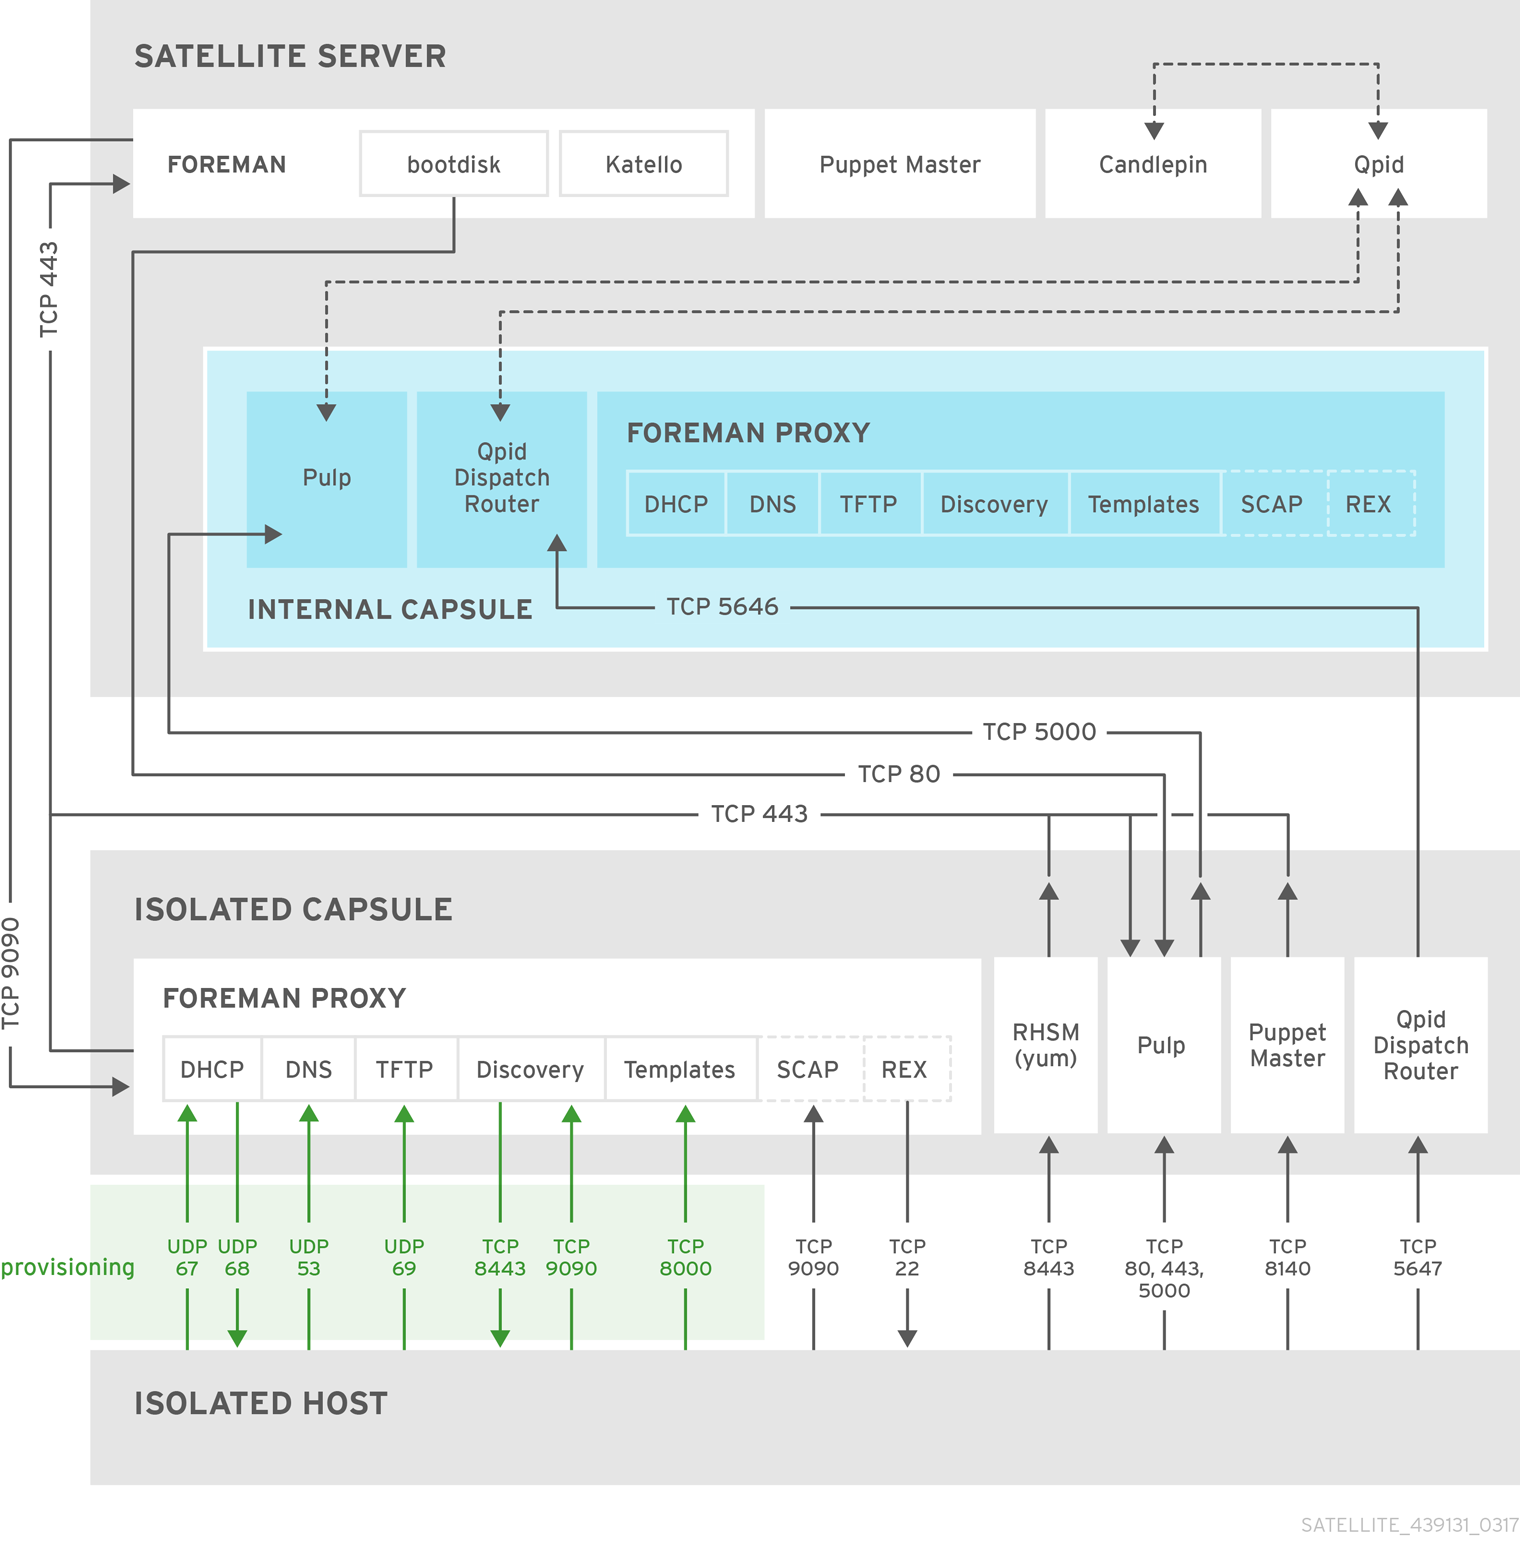 RedHat Satellite topology with isolated host